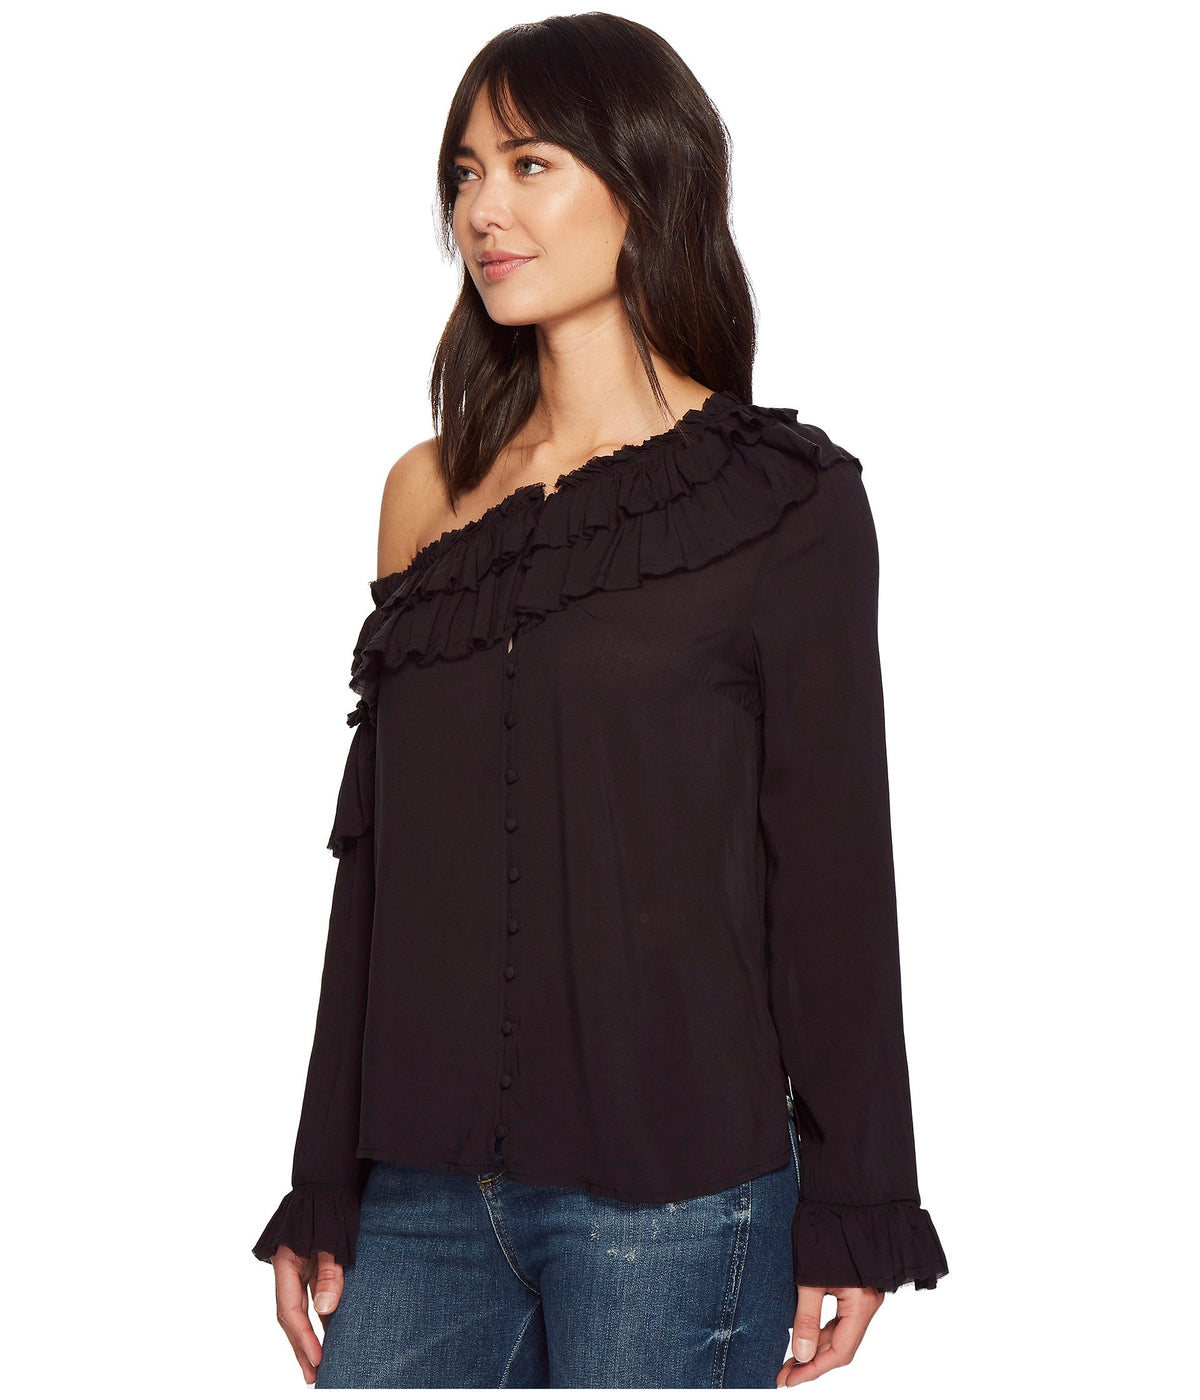 Augustina Blouse